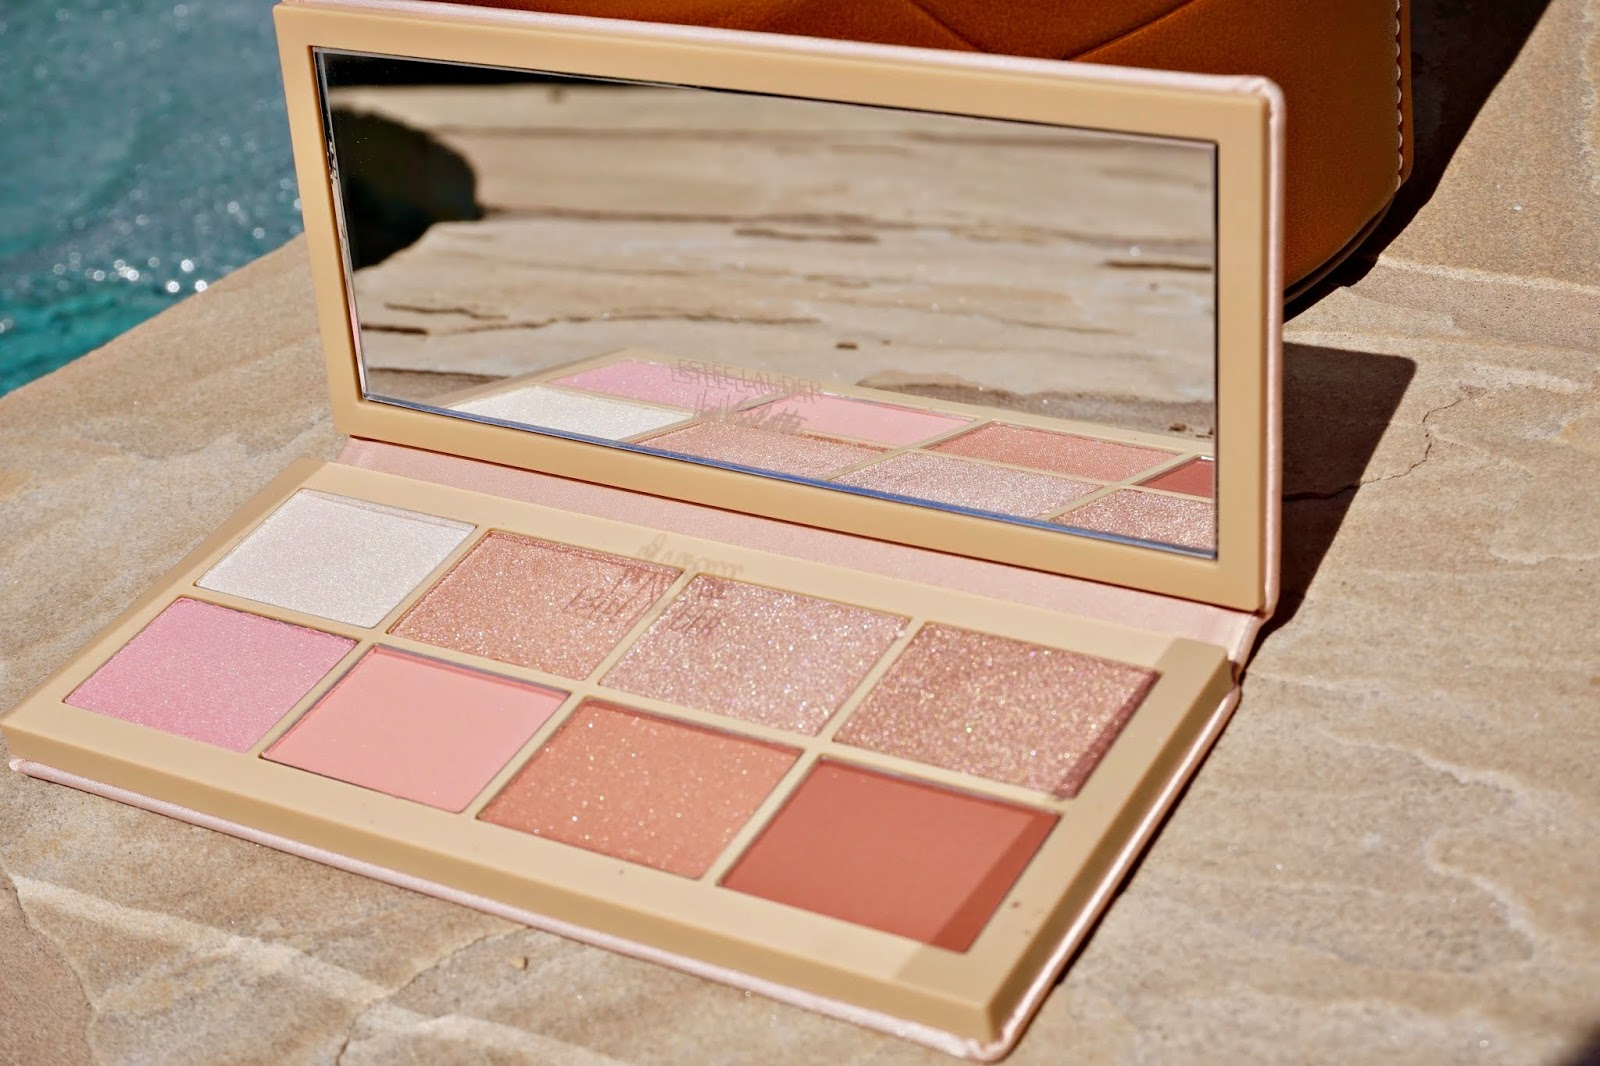 Estee Lauder Violette Oh Naturelle! Face and Eye Palette swatches